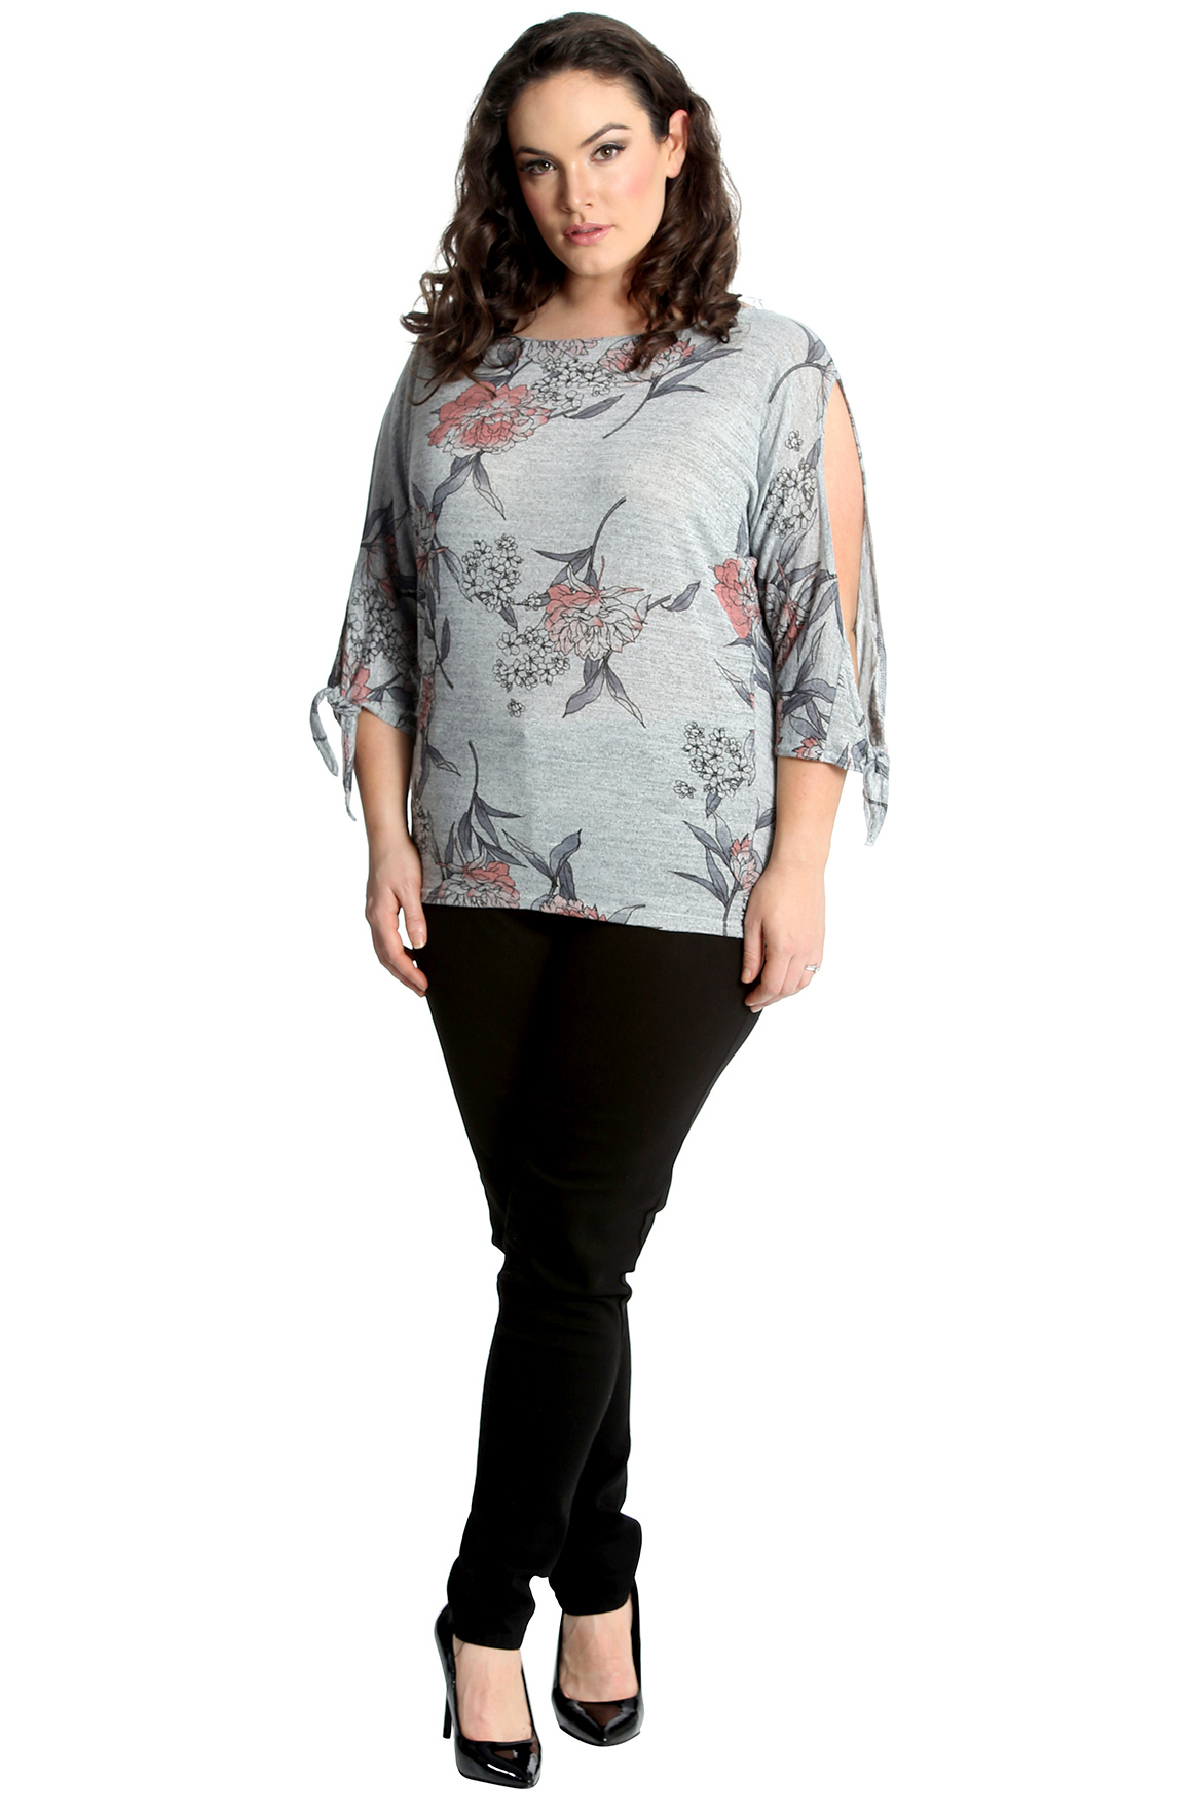 New Womens Plus Size Top Ladies Floral Print Cut Out Cold Sleeve Gypsy Nouvelle